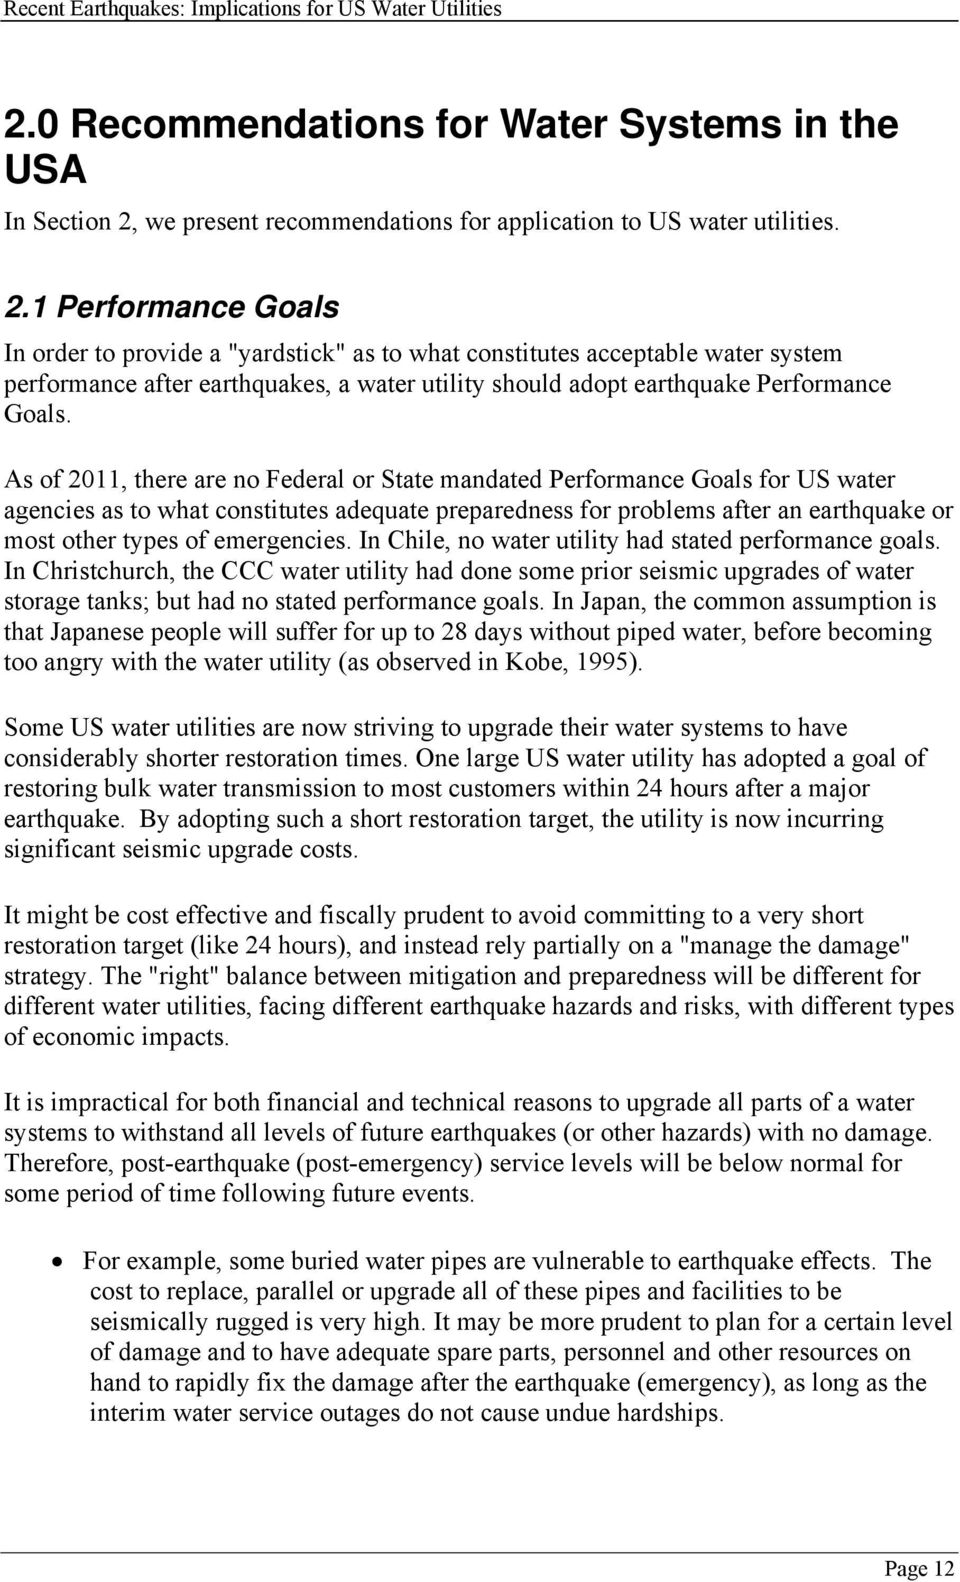 "1 Performance Goals In order to provide a ""yardstick"" as to what constitutes acceptable water system performance after earthquakes, a water utility should adopt earthquake Performance Goals."